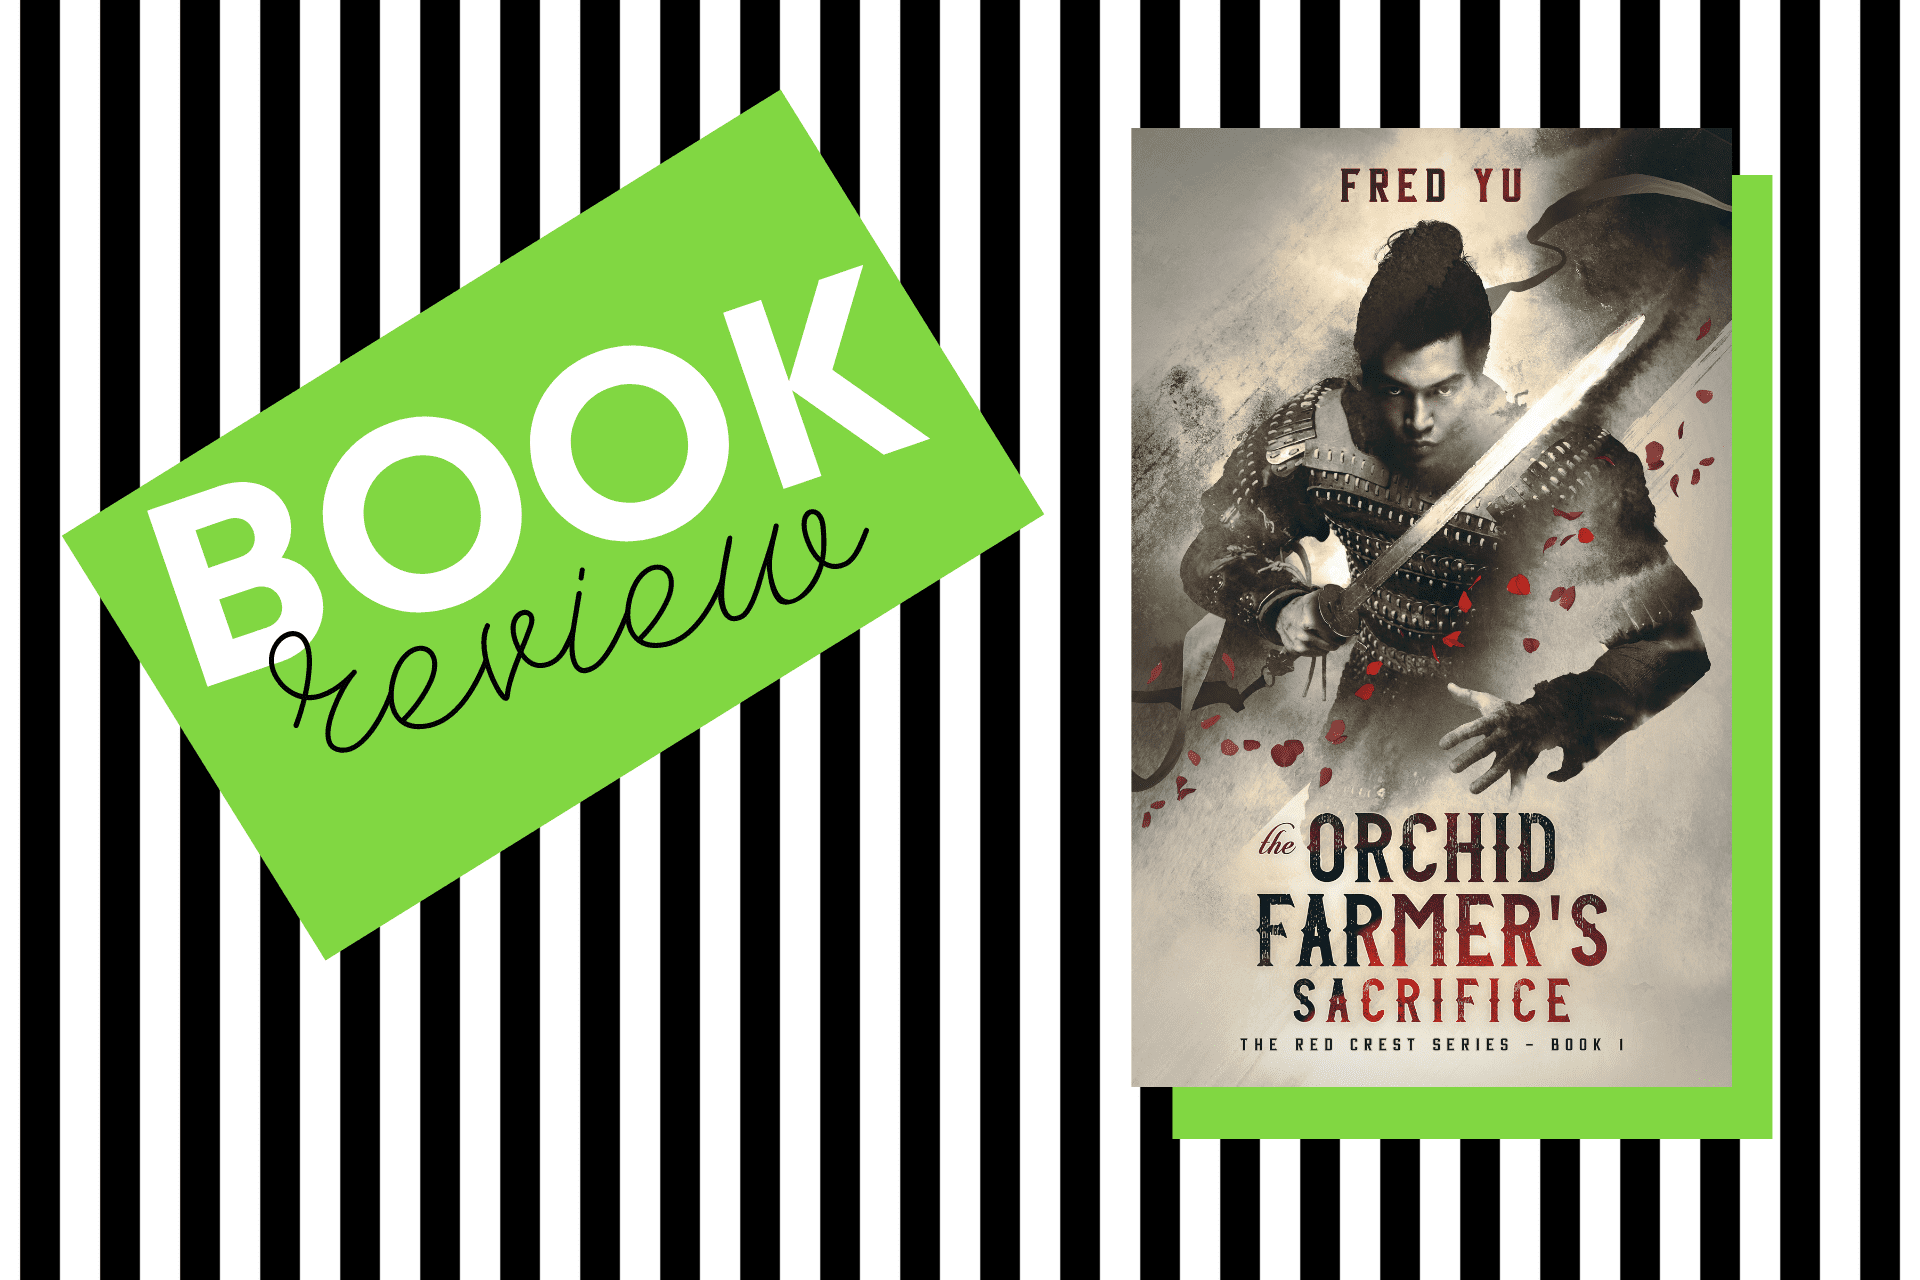 The cover of The Orchid Farmer's Sacrifice by Fred Yu